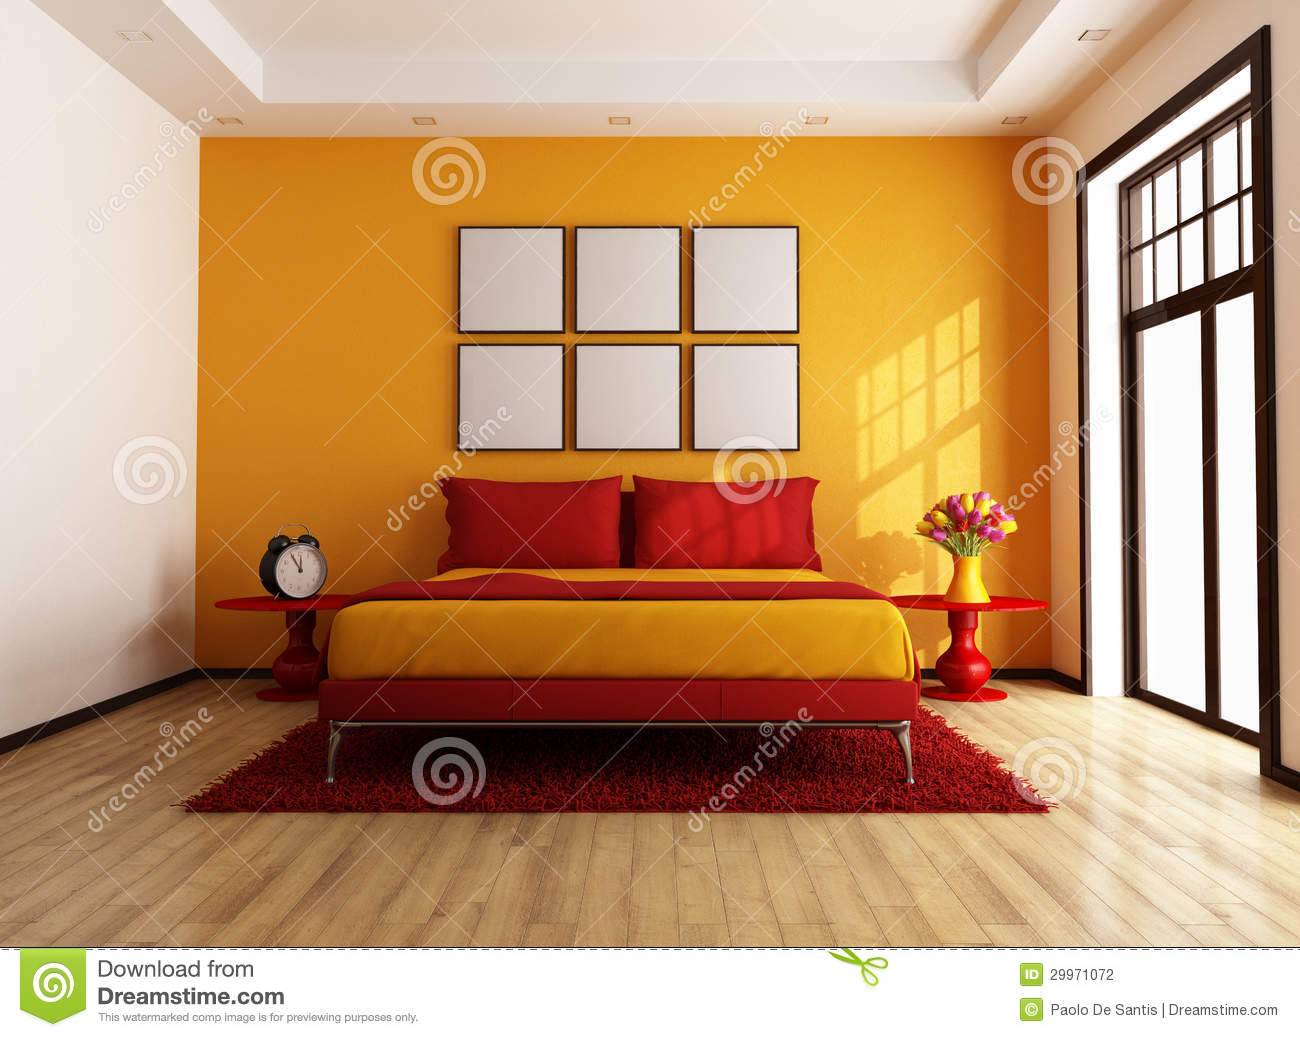 chambre orange et rouge avec des id es int ressantes pour la conception de la chambre. Black Bedroom Furniture Sets. Home Design Ideas